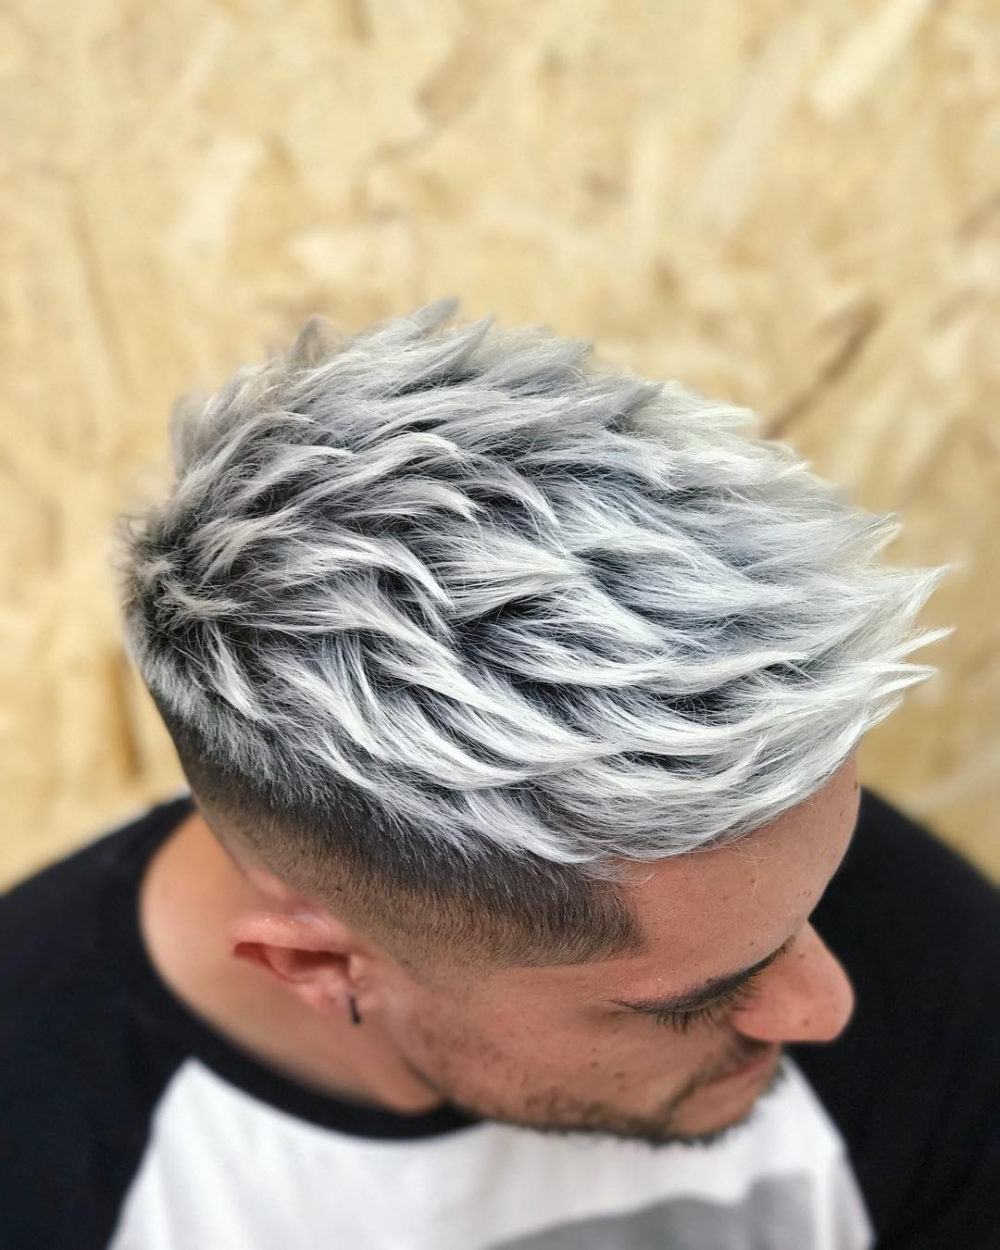 29 Coolest Men's Hair Color Ideas In 2019 Pertaining To Most Recent Icy Purple Mohawk Hairstyles With Shaved Sides (View 20 of 20)